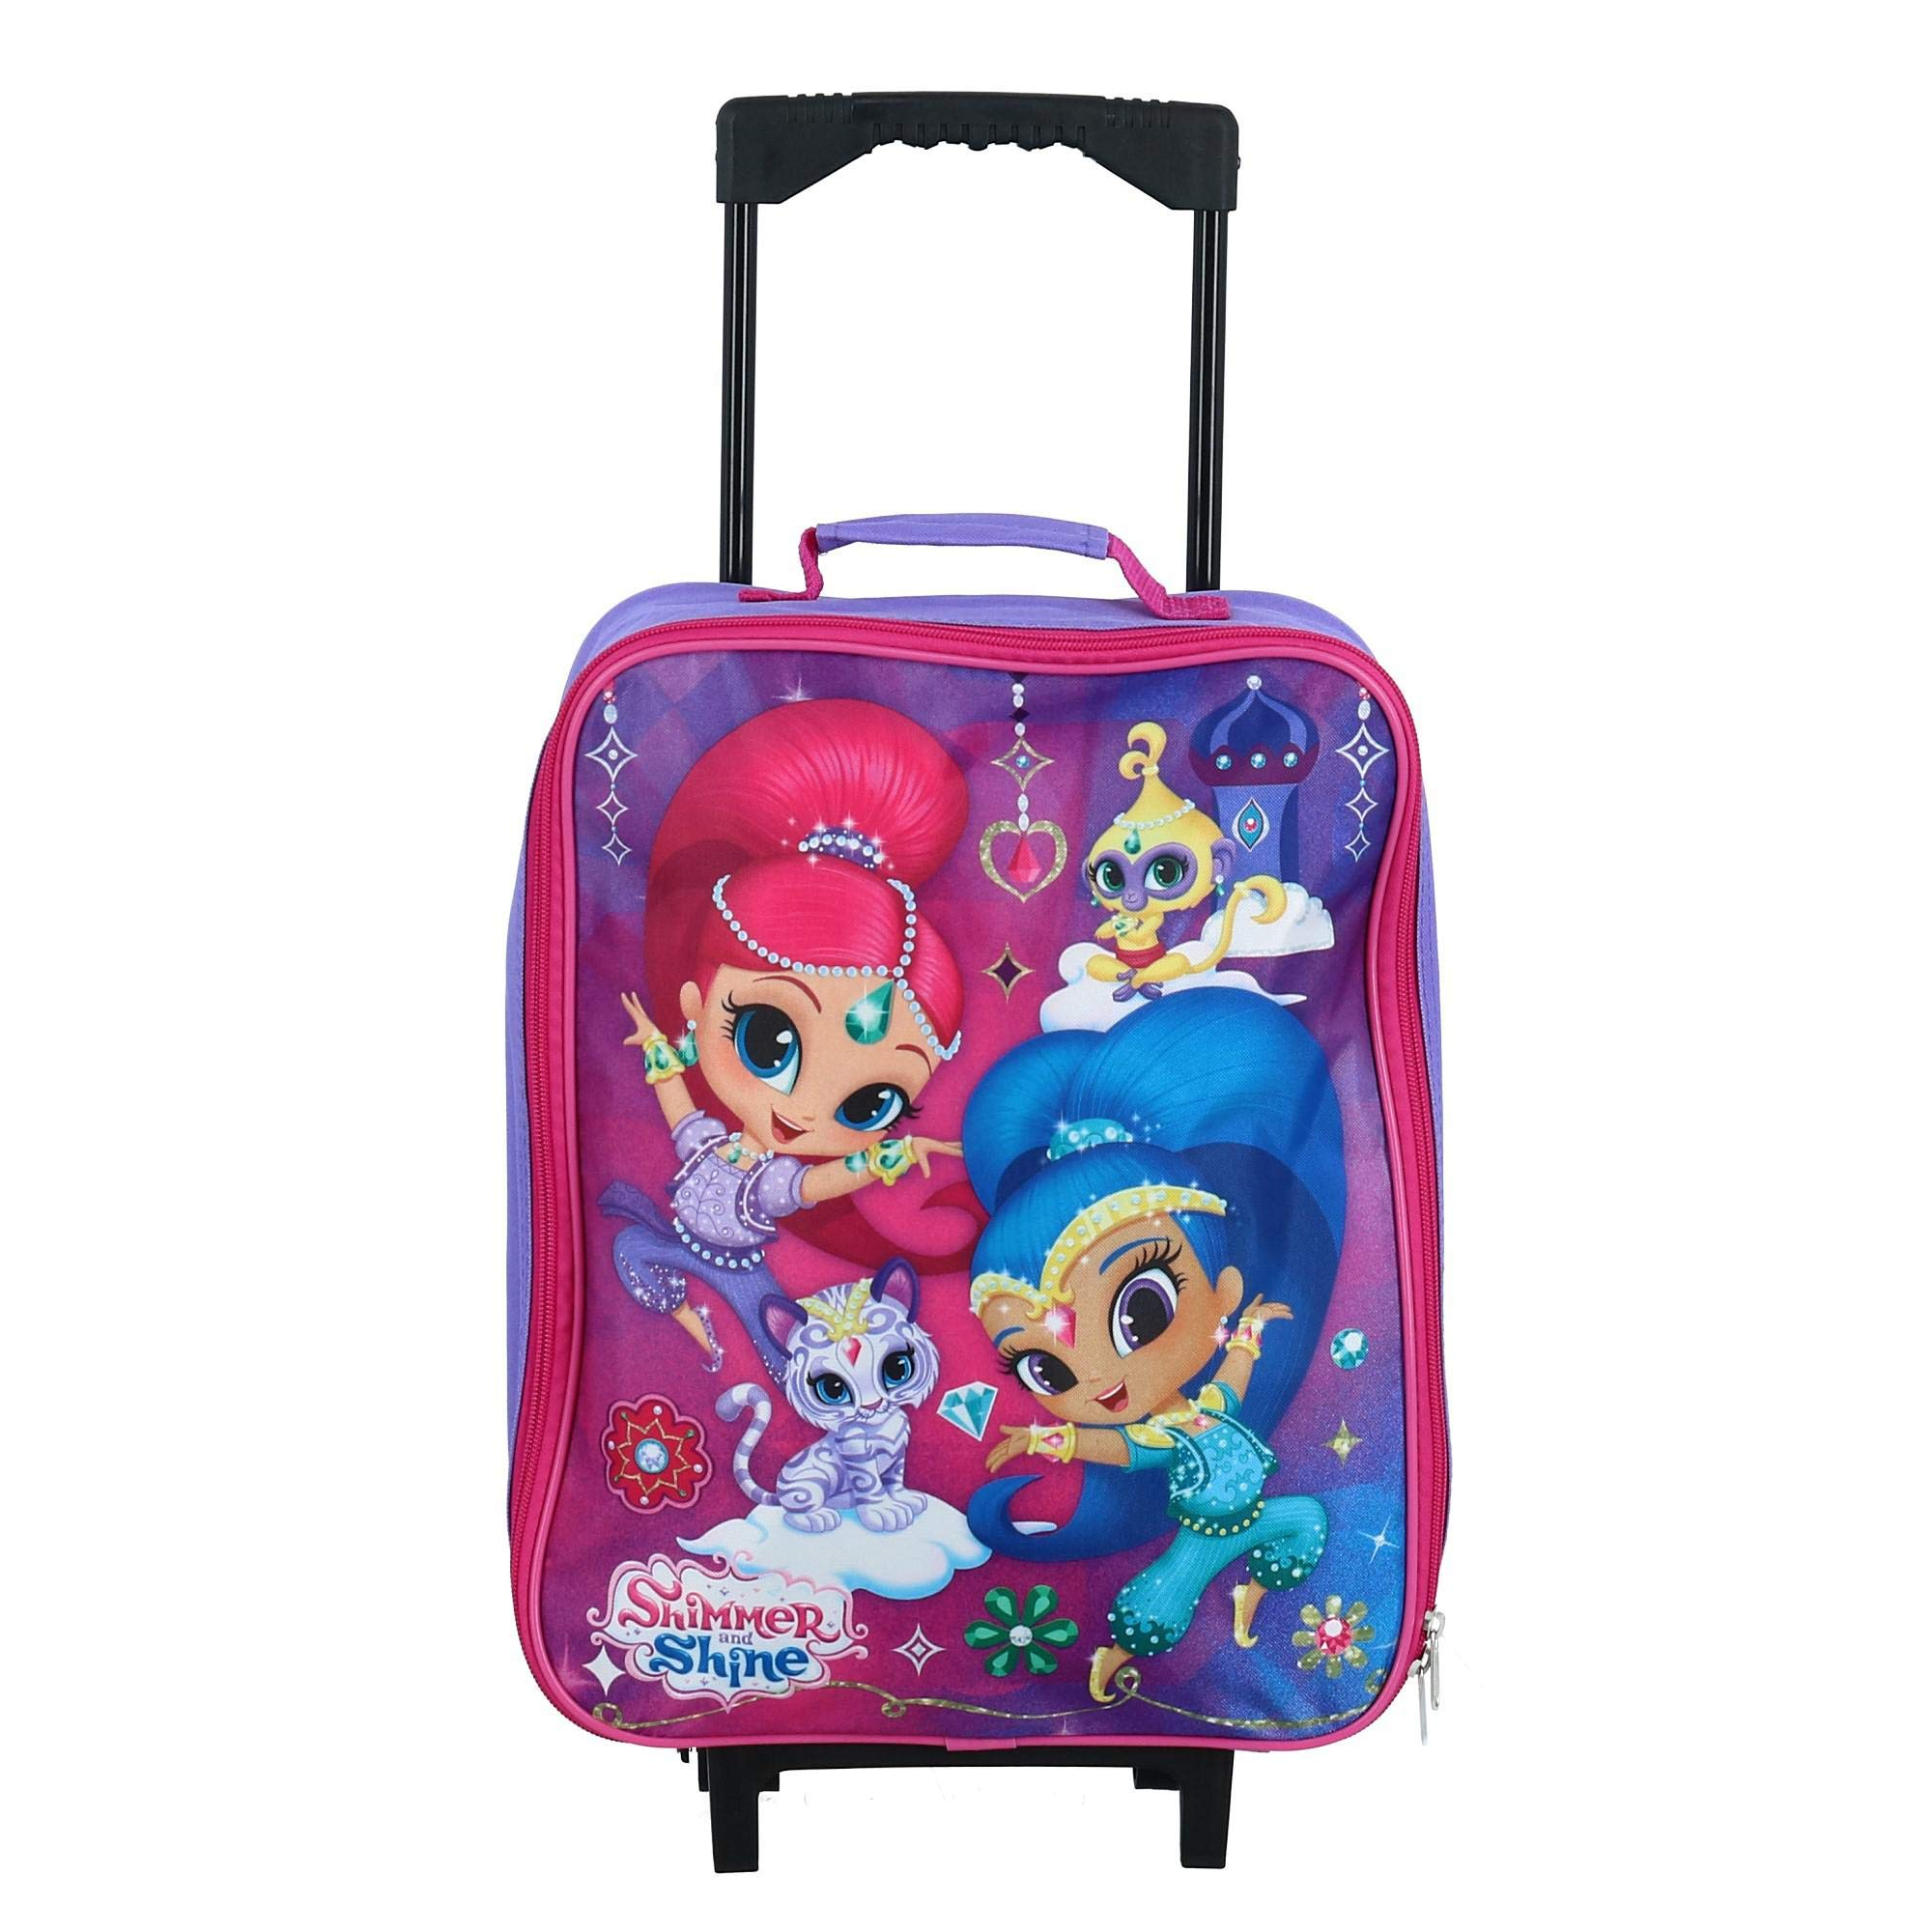 Cartoon Magic Unicorn Spandex Trolley Case Travel Luggage Protector Suitcase Cover 28.5 X 20.5 Inch